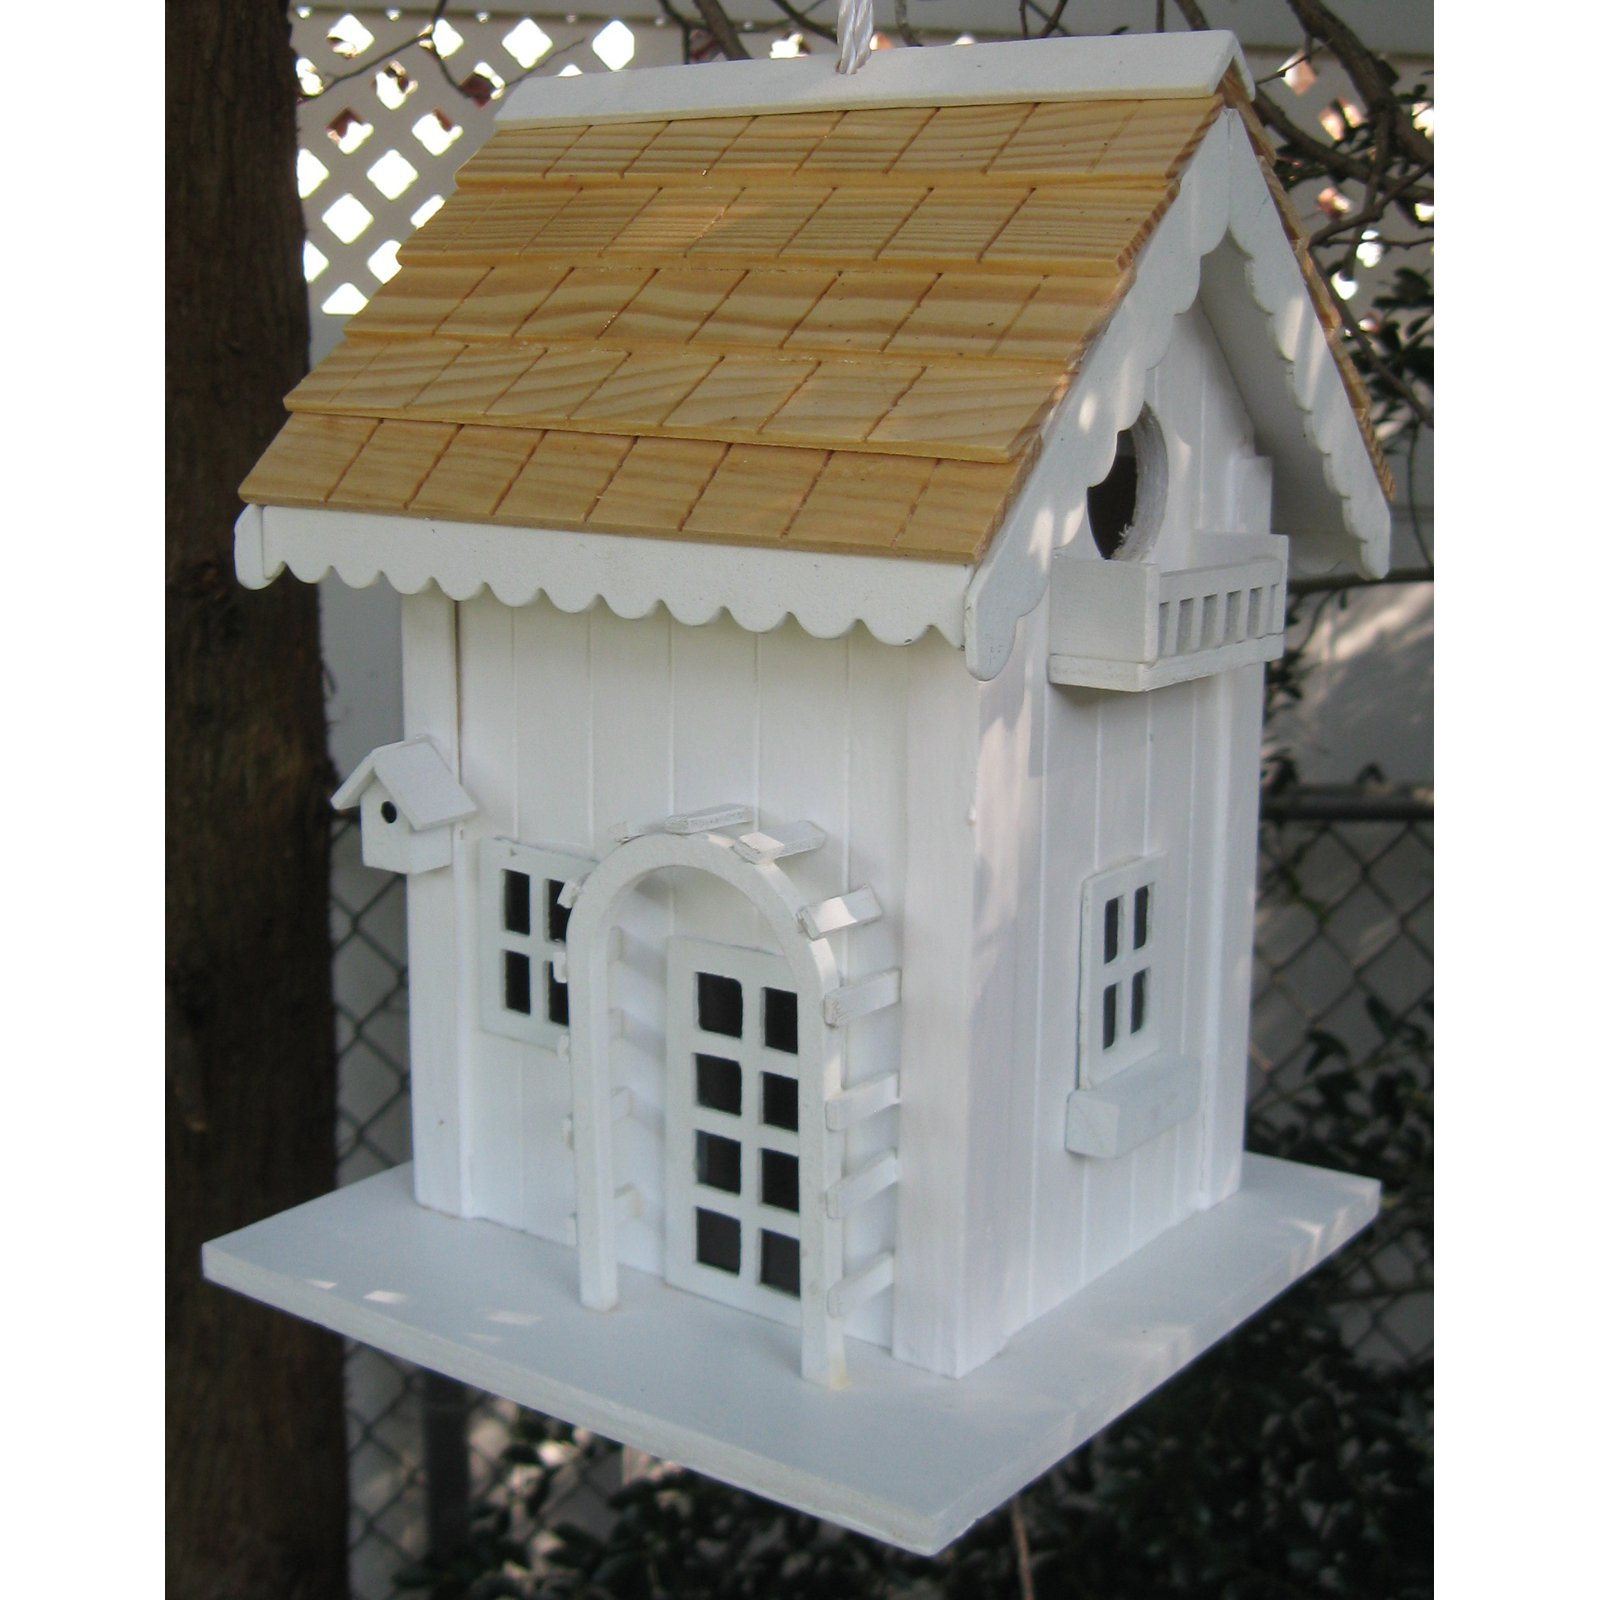 Home Bazaar Arbor Cottage Birdhouse White by Home Bazaar Inc.